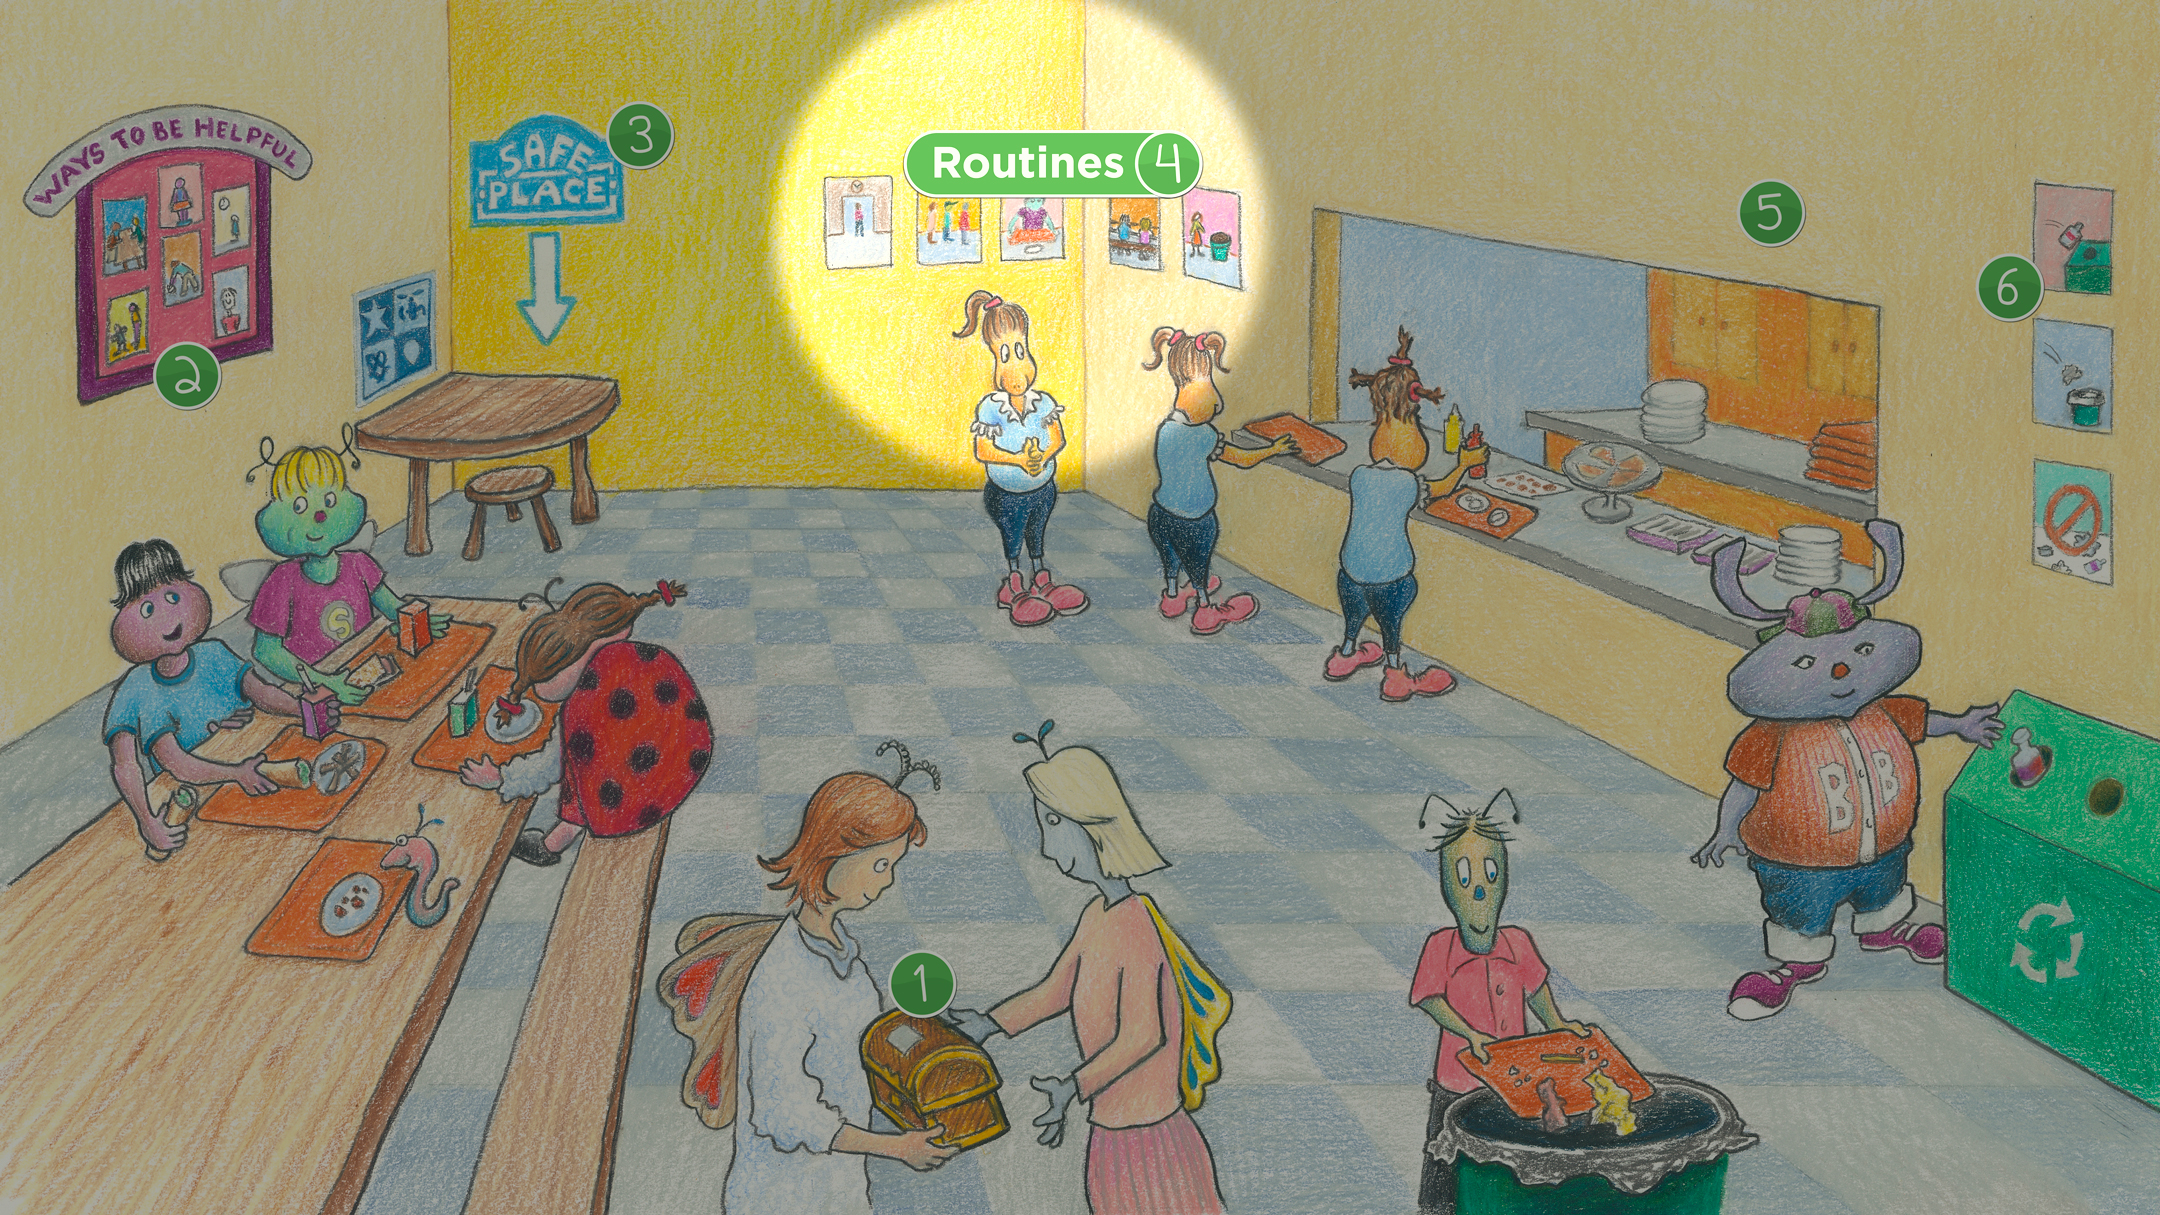 Cafeteria: Routines